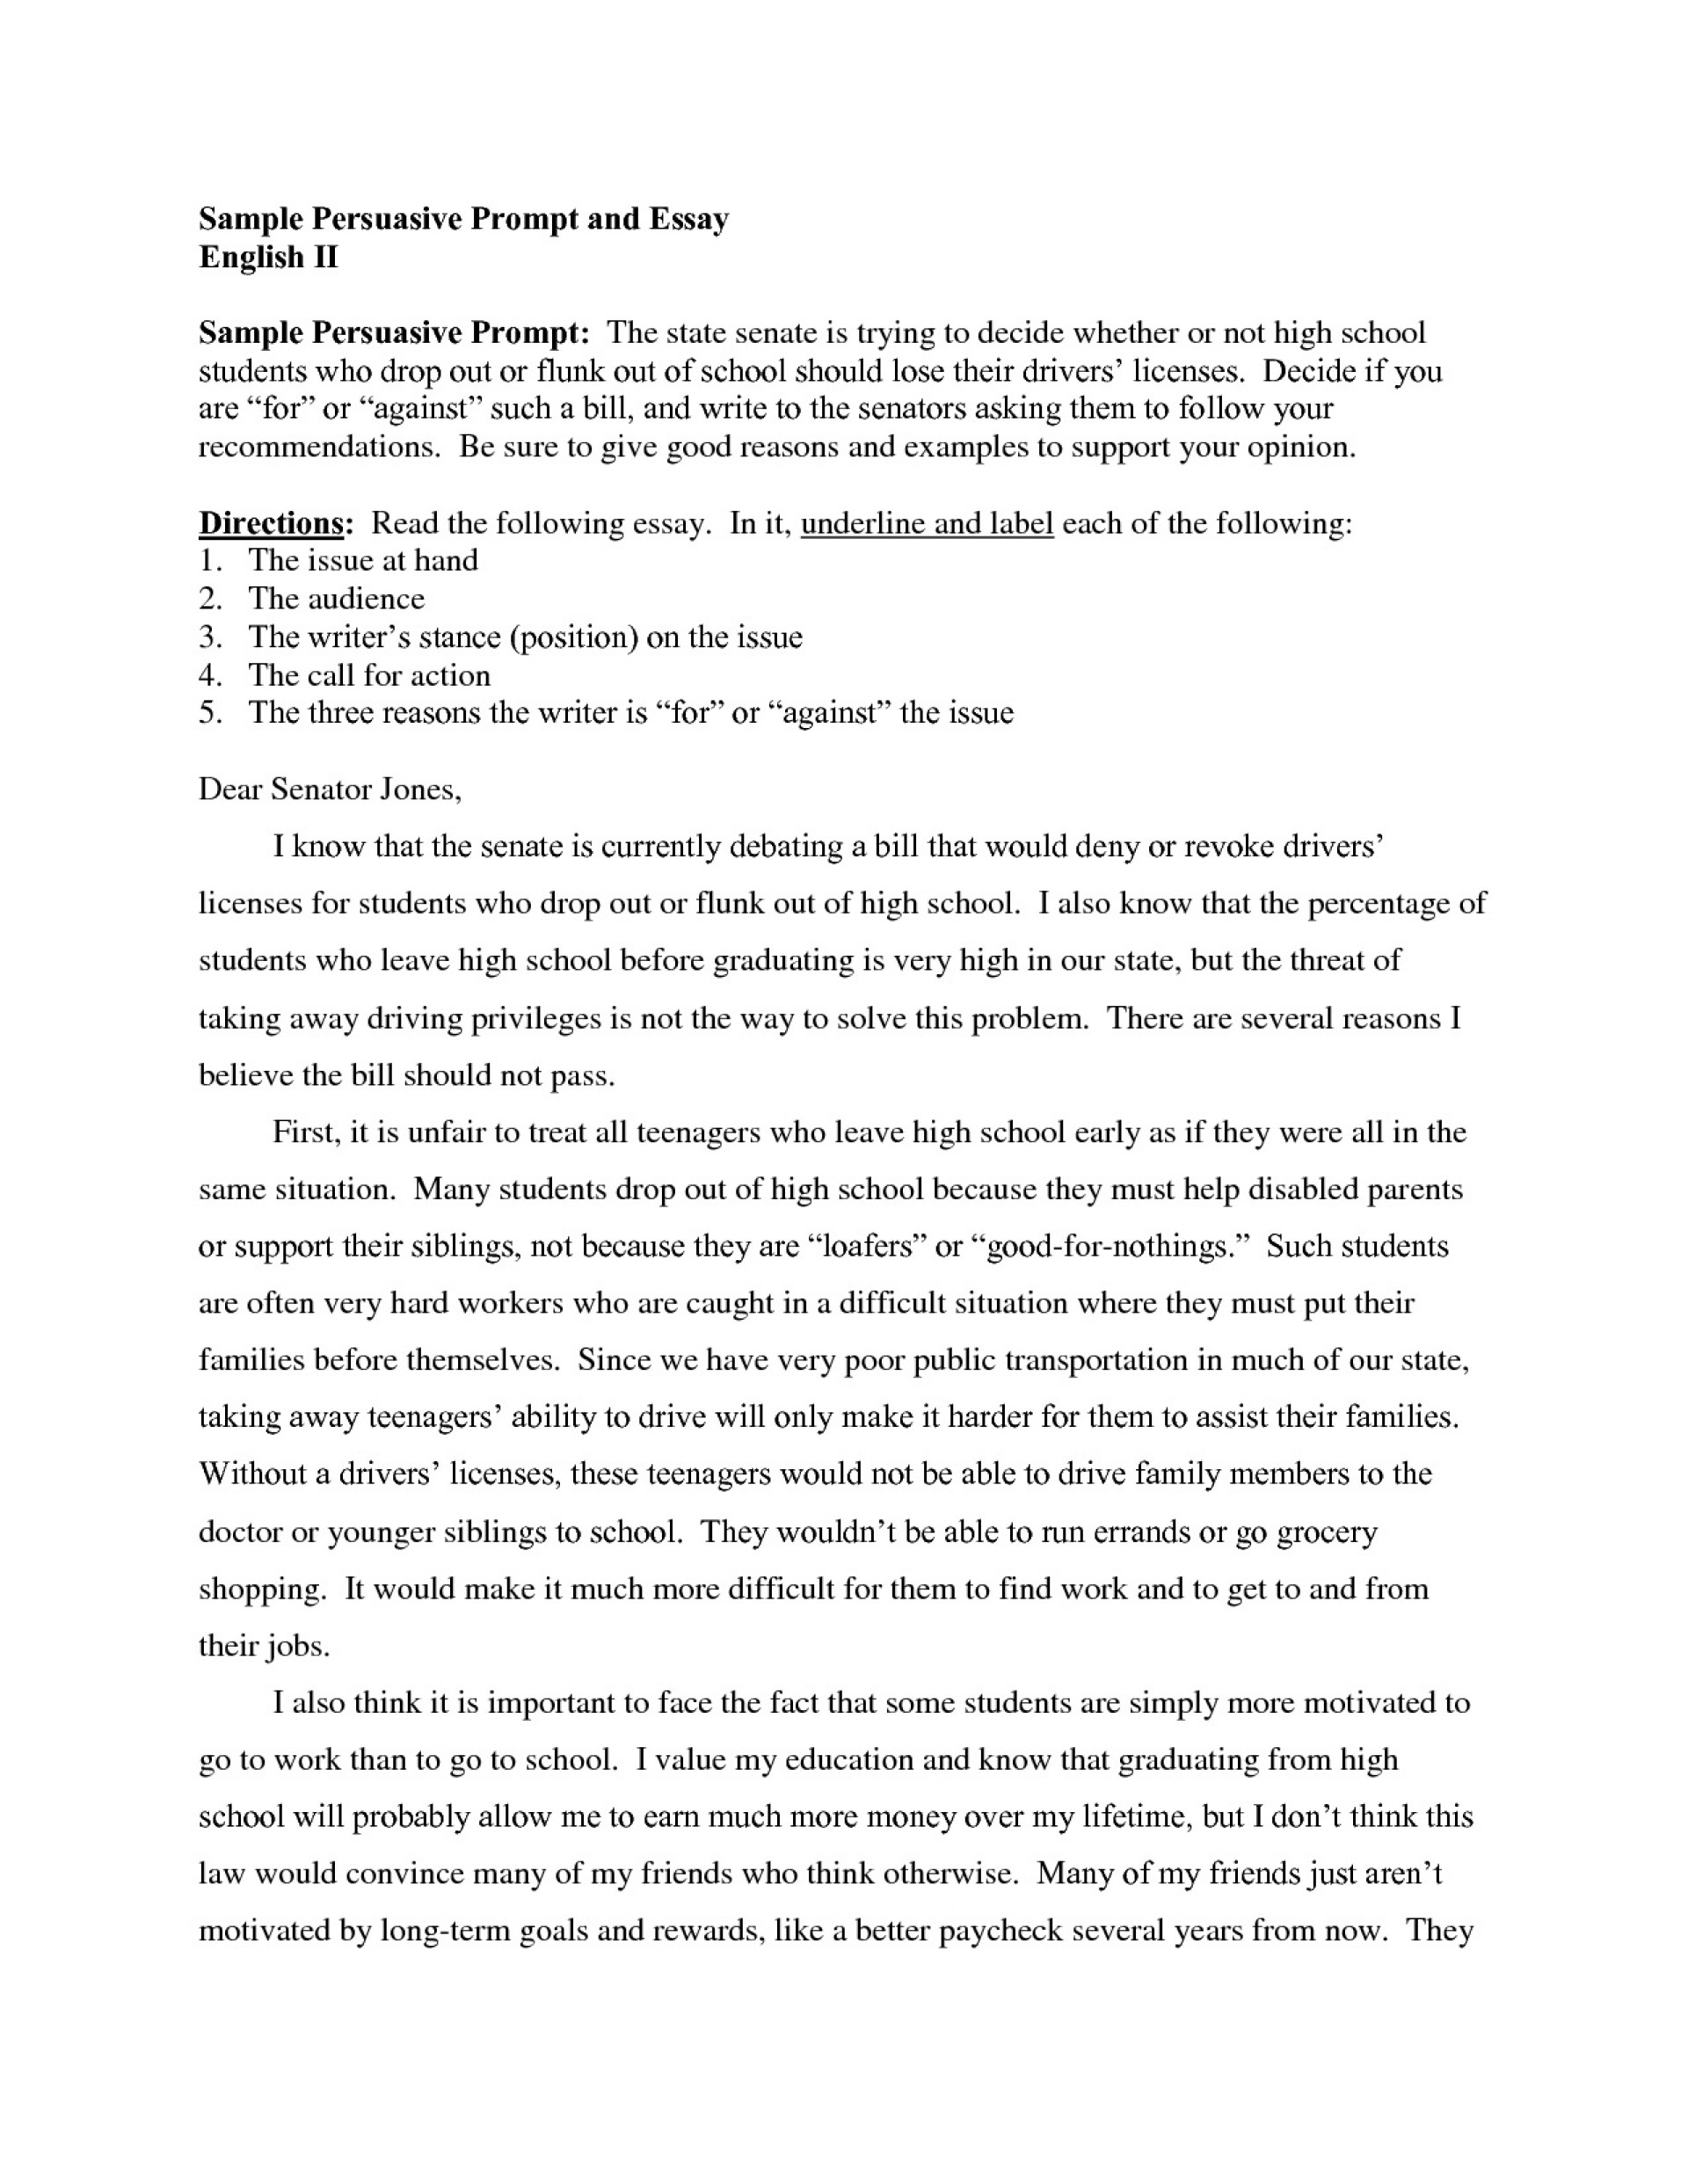 021 Research Paper Samples Of Persuasive Essays For High School Students Demire Argumentative Essay Impressive Topics Senior Qualitative Sample In The Philippines 1920